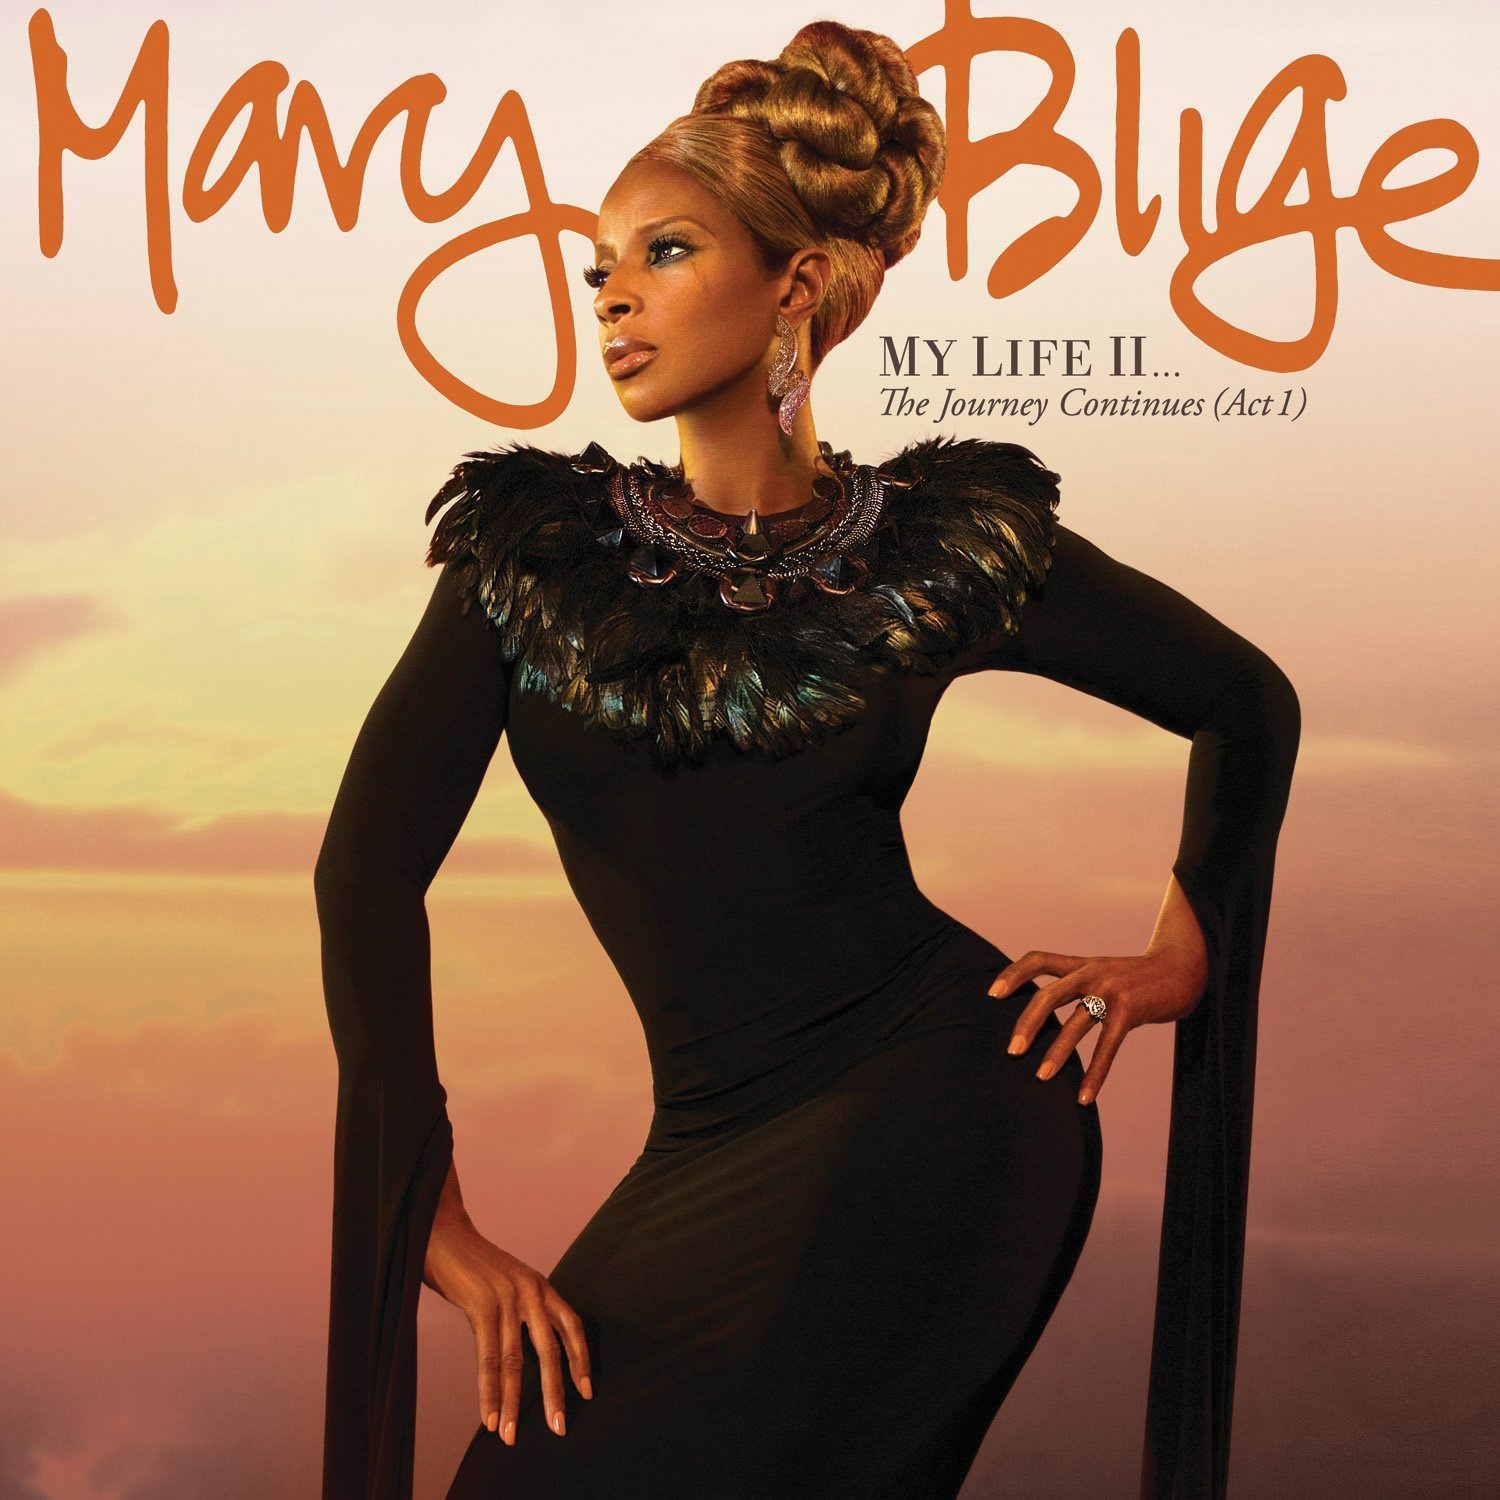 Mary J. Blige, My Life II...The Journey Continues (Act 1)